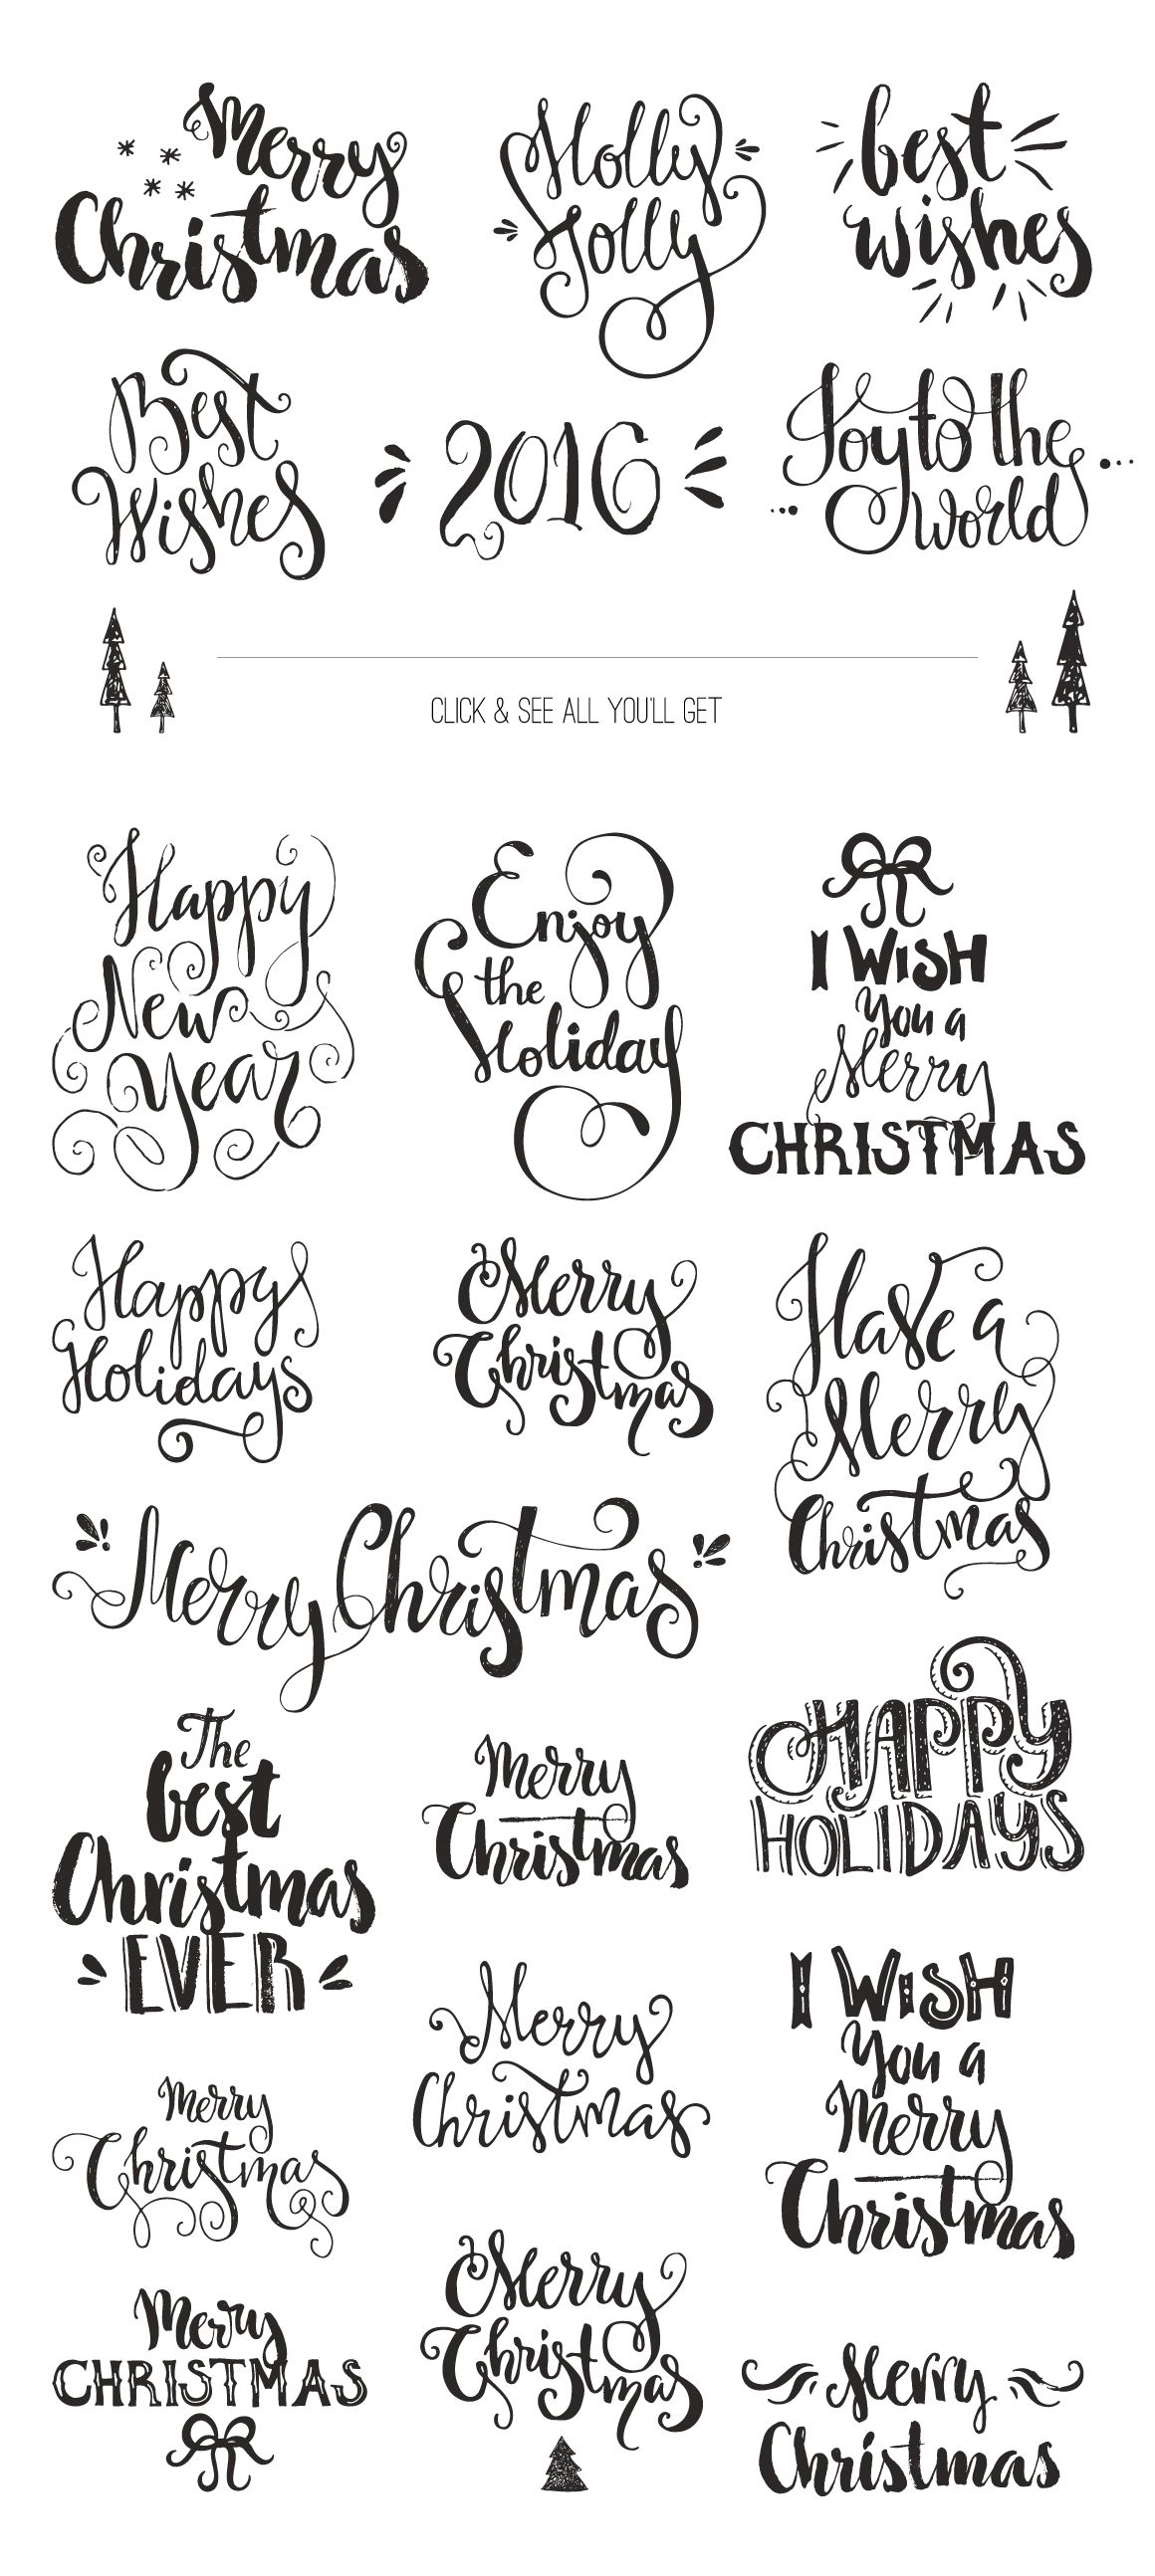 handdrawn christmas photo overlays by favete art on. Black Bedroom Furniture Sets. Home Design Ideas